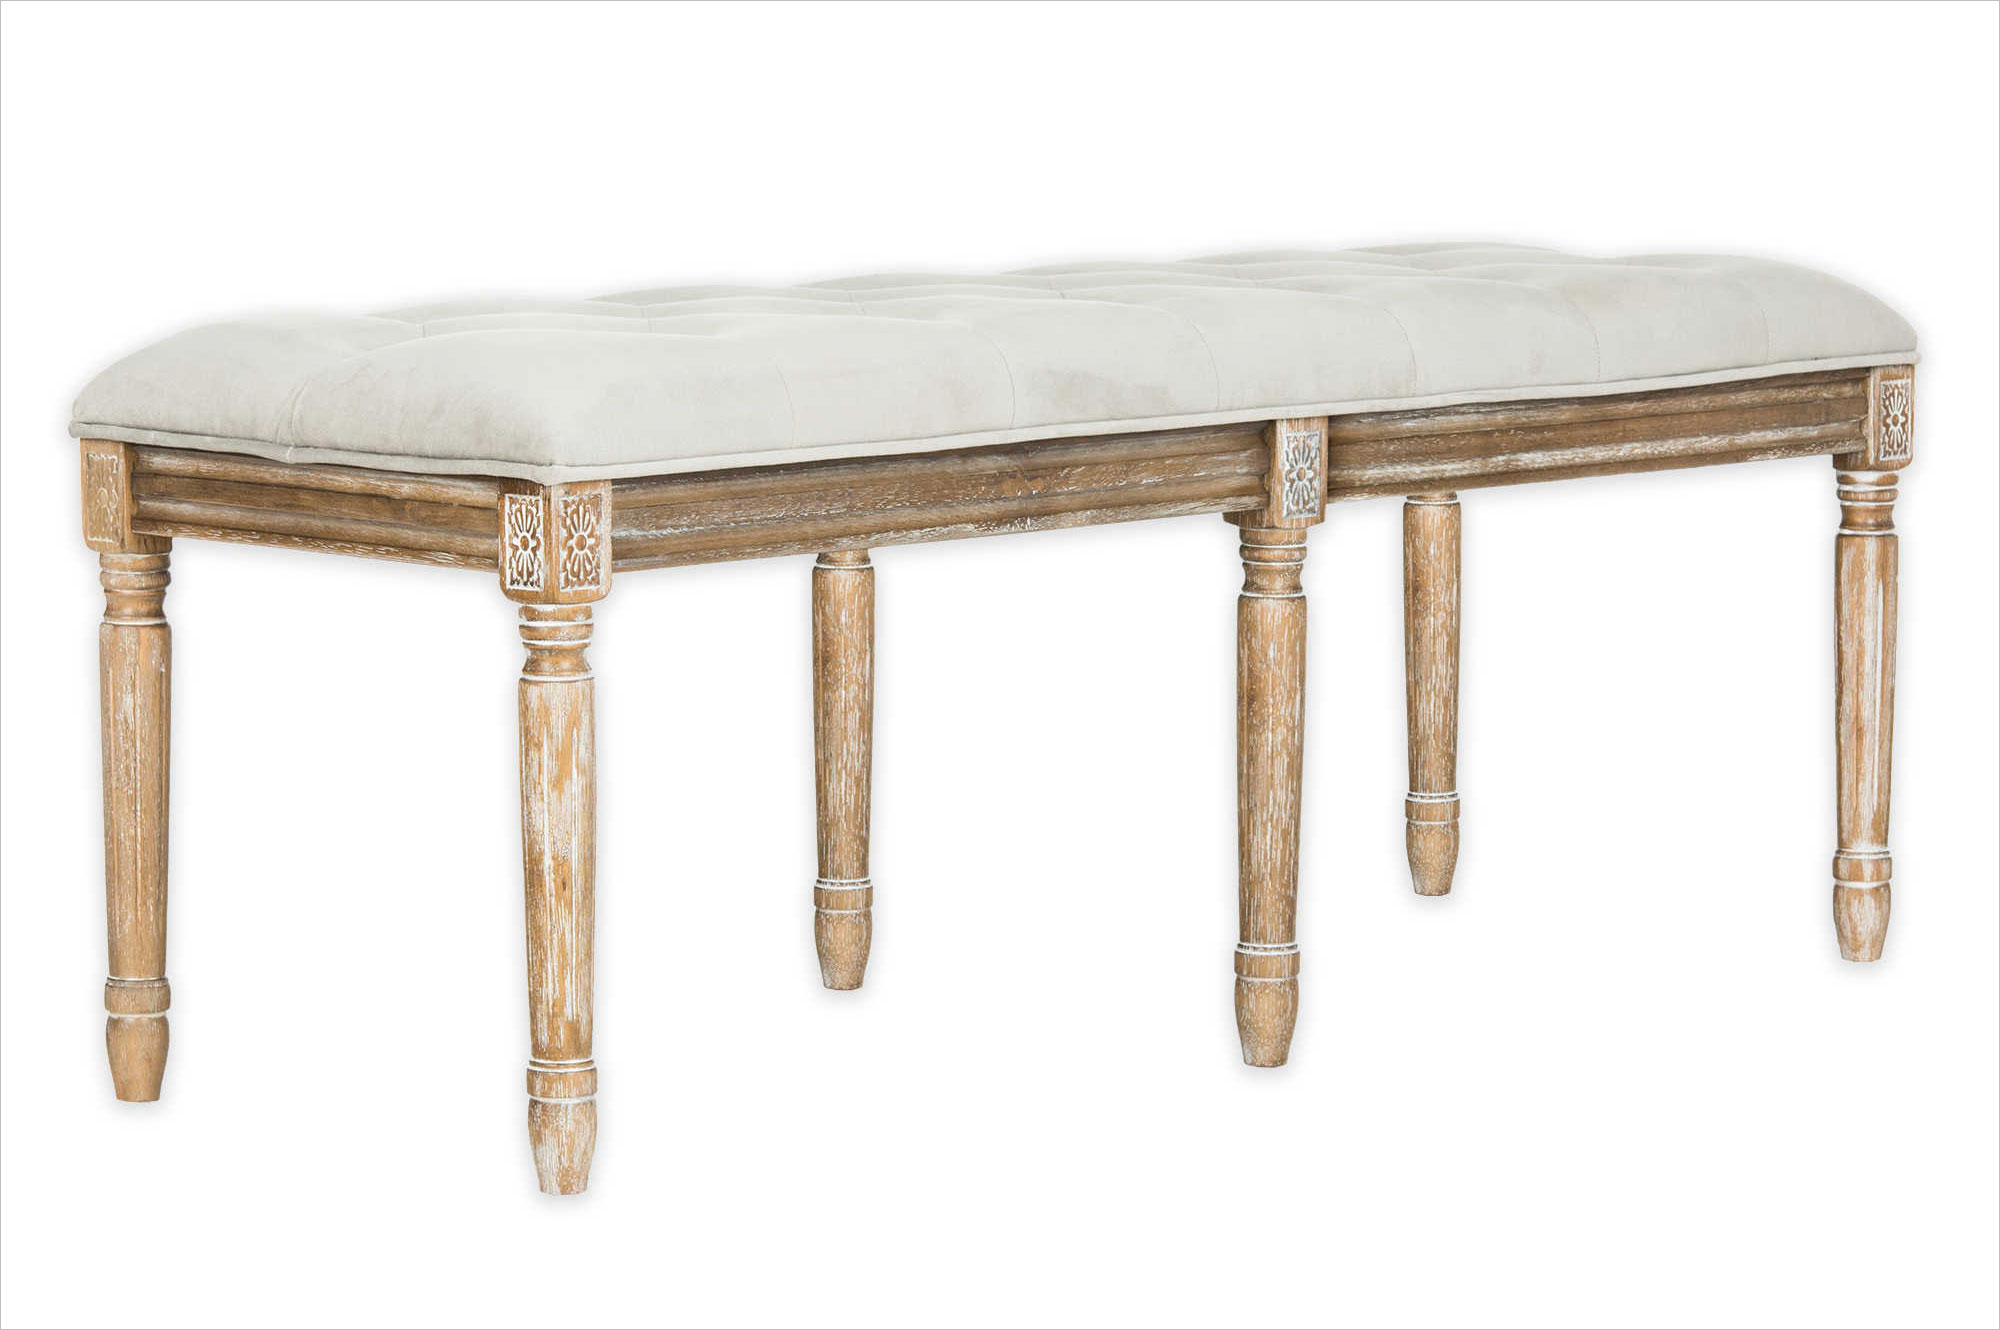 Safavieh tufted bench in grey bed bath and beyond registry ideas